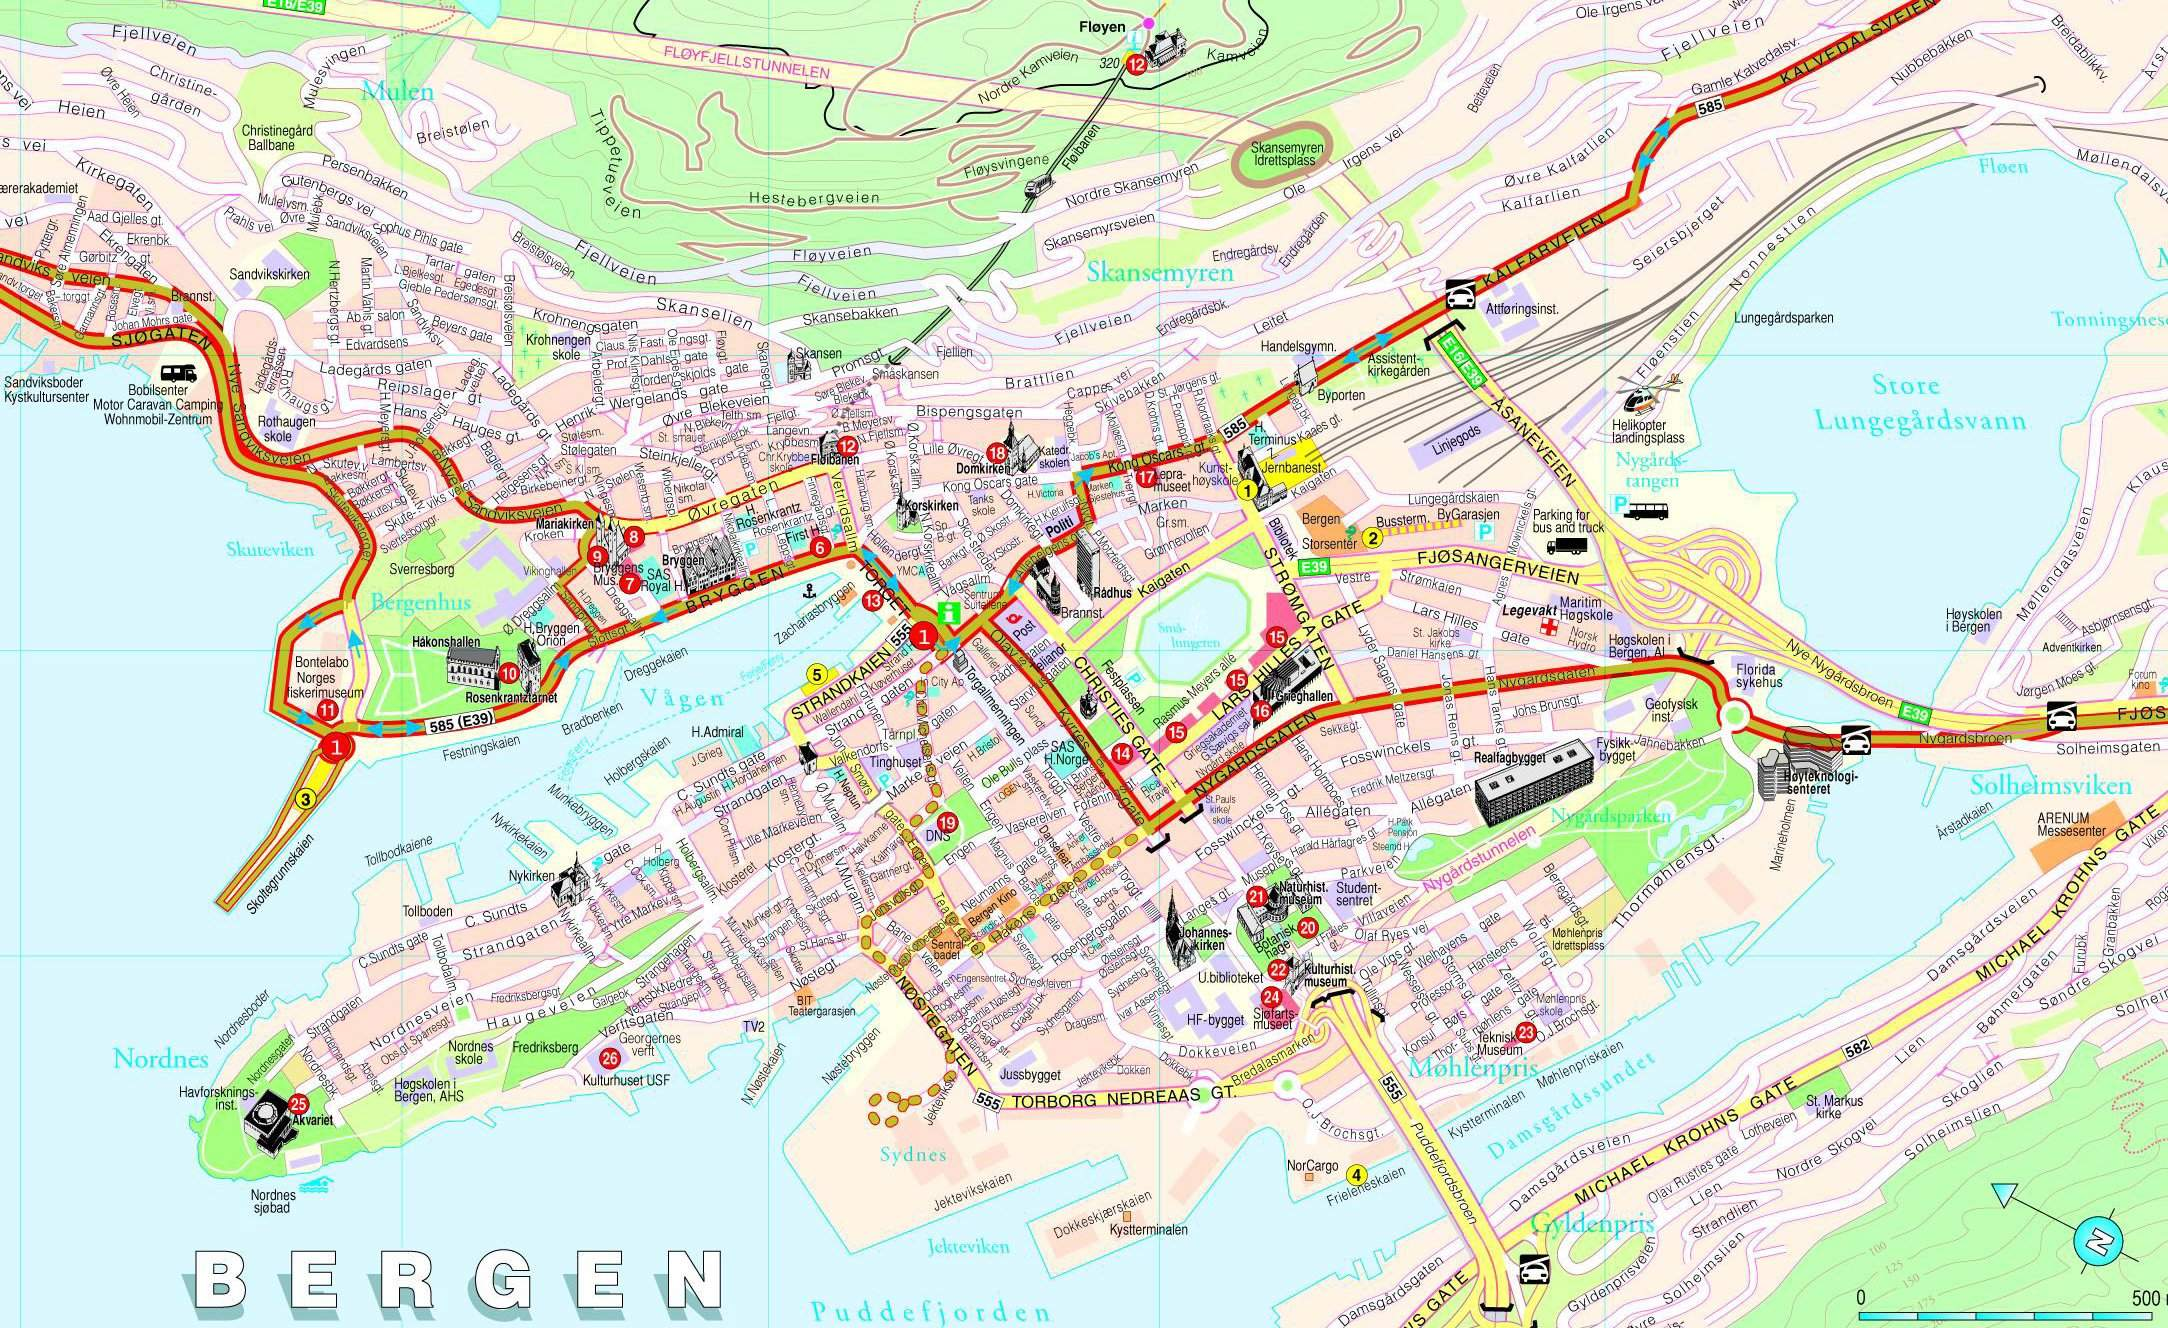 Large Bergen Maps For Free Download And Print HighResolution - Norway map detailed